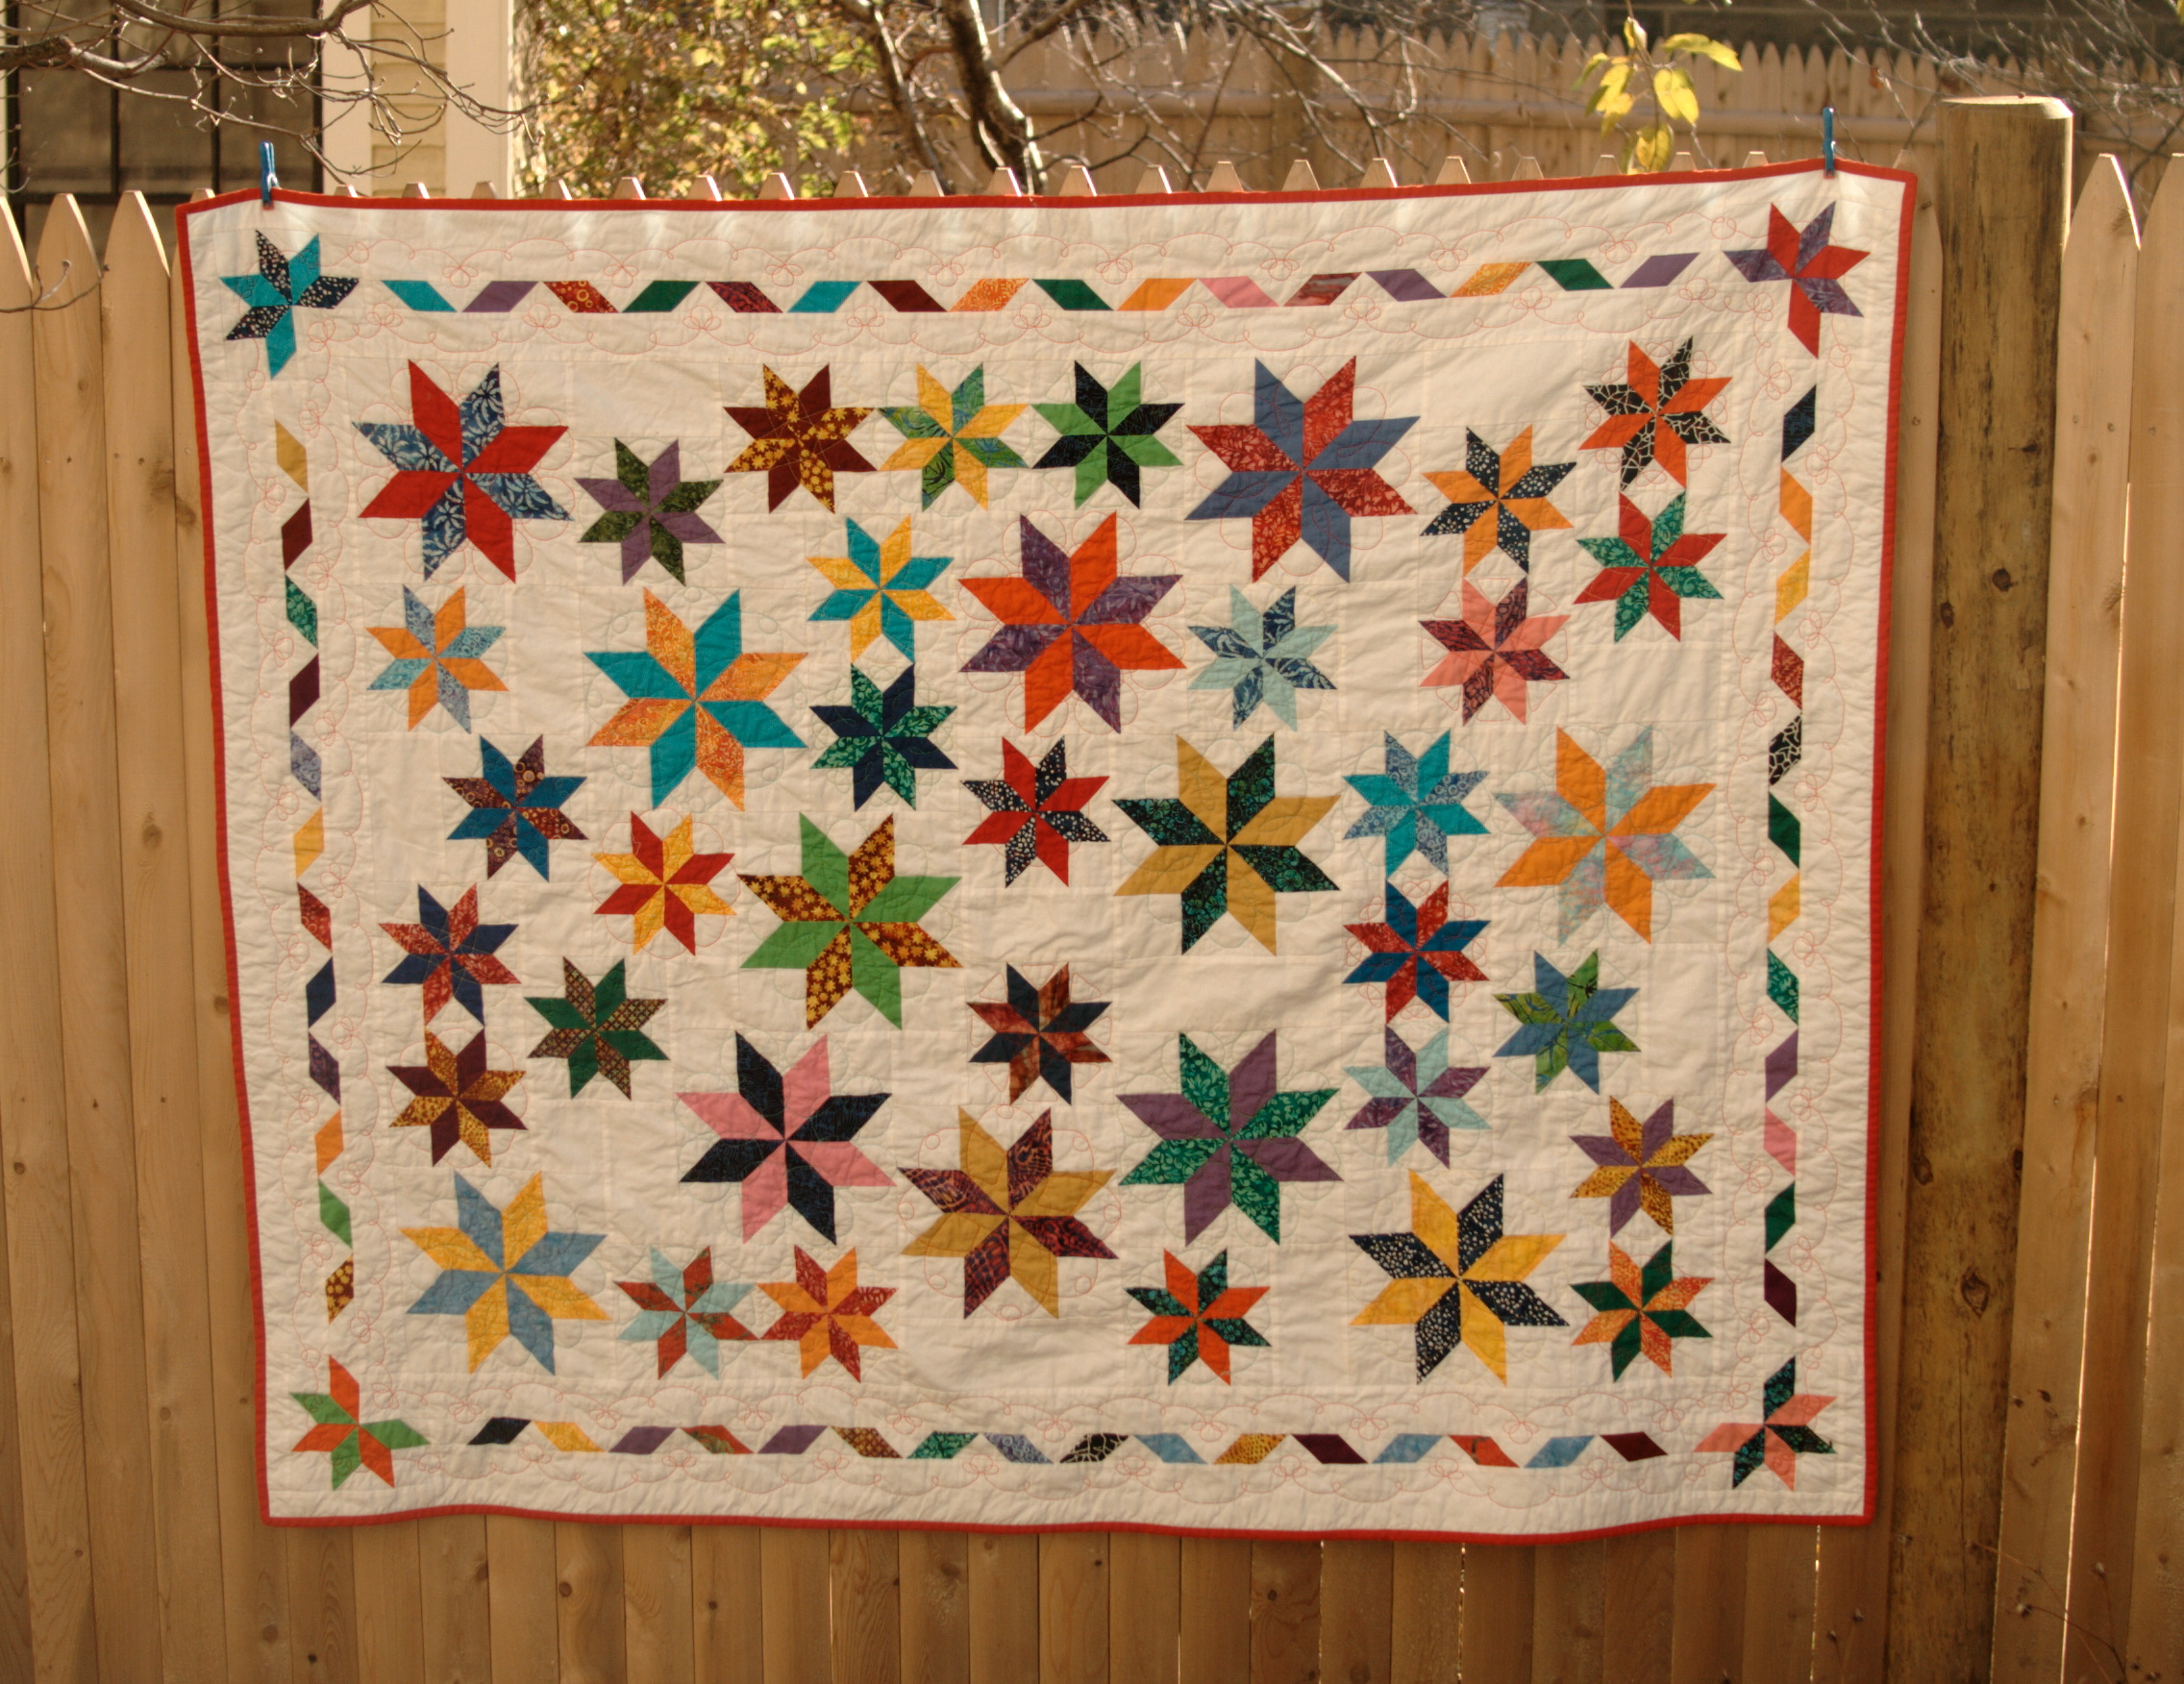 Random Stars Quilt With Epicycles